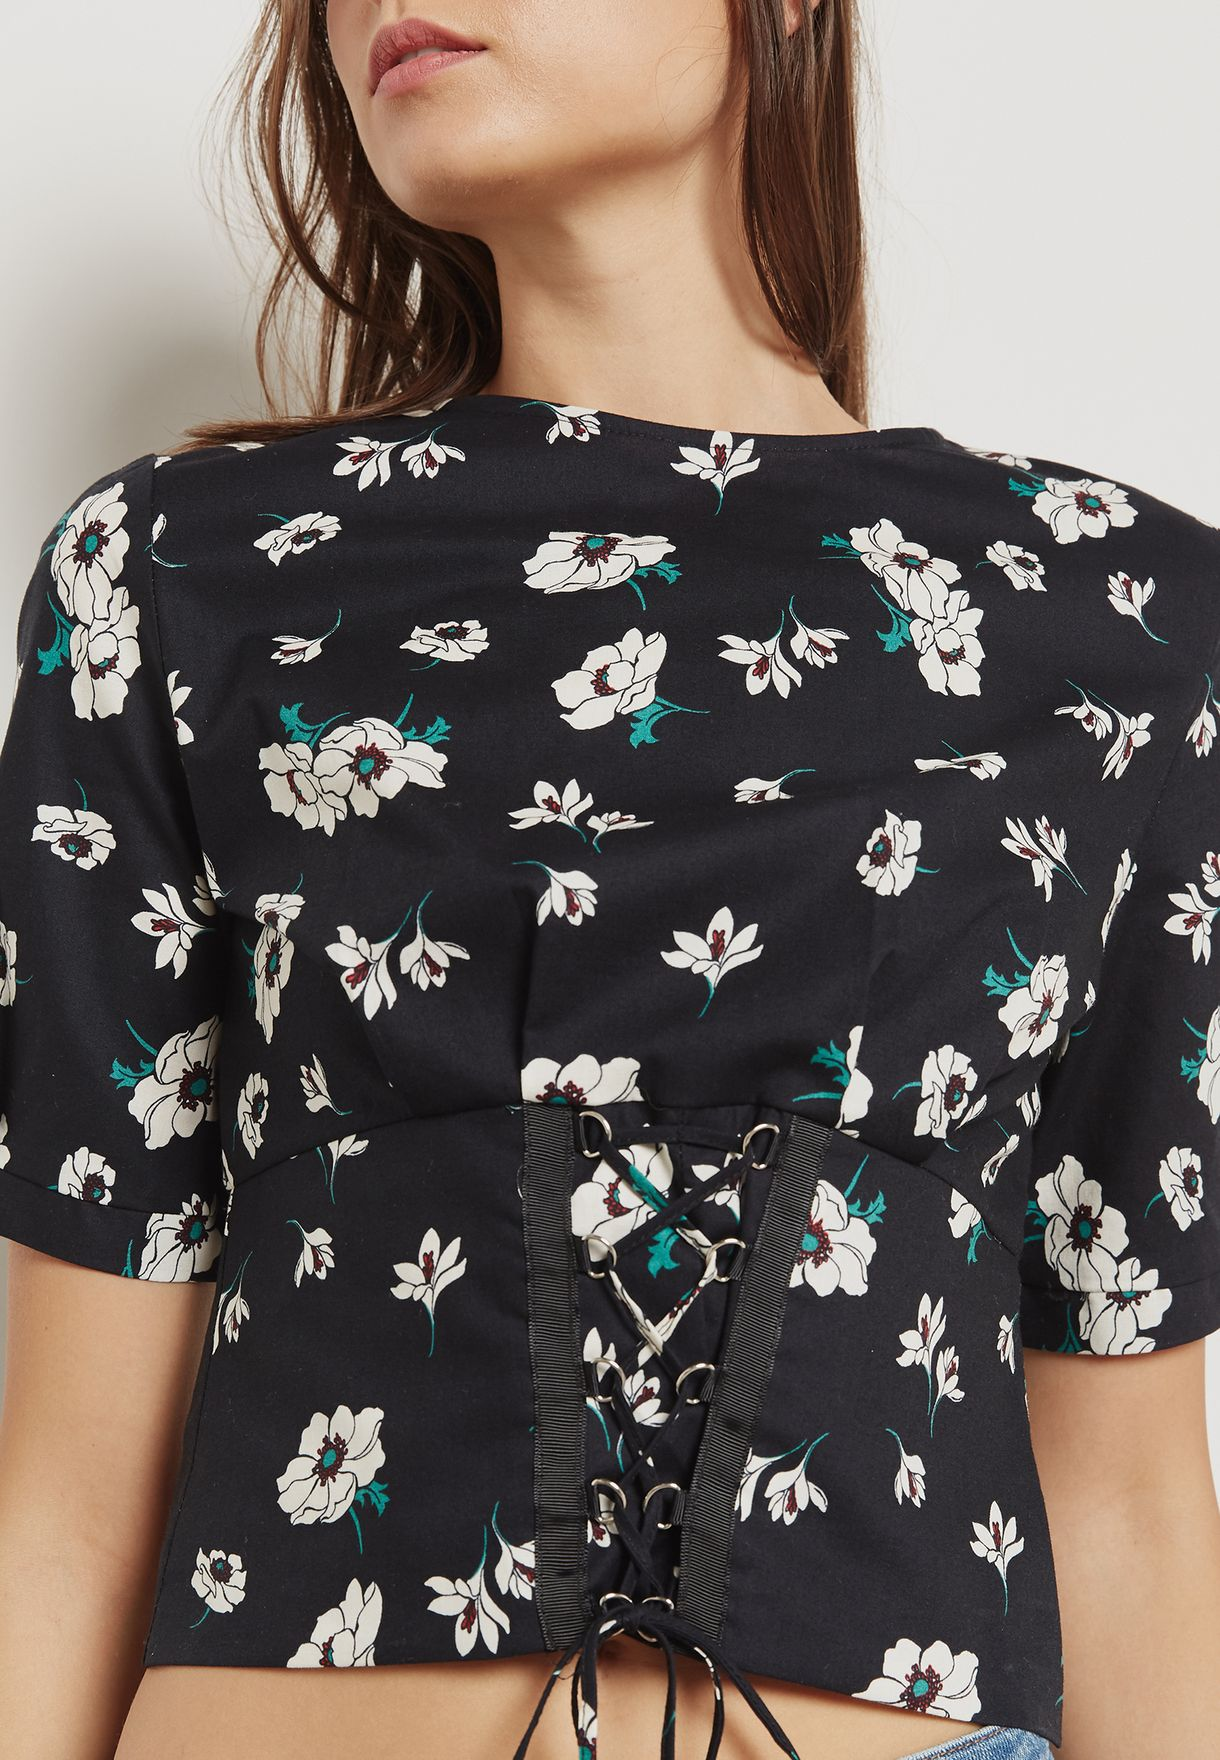 2abe77151252 Shop Topshop prints Floral Print Corset Top 13P10MBLK for Women in ...